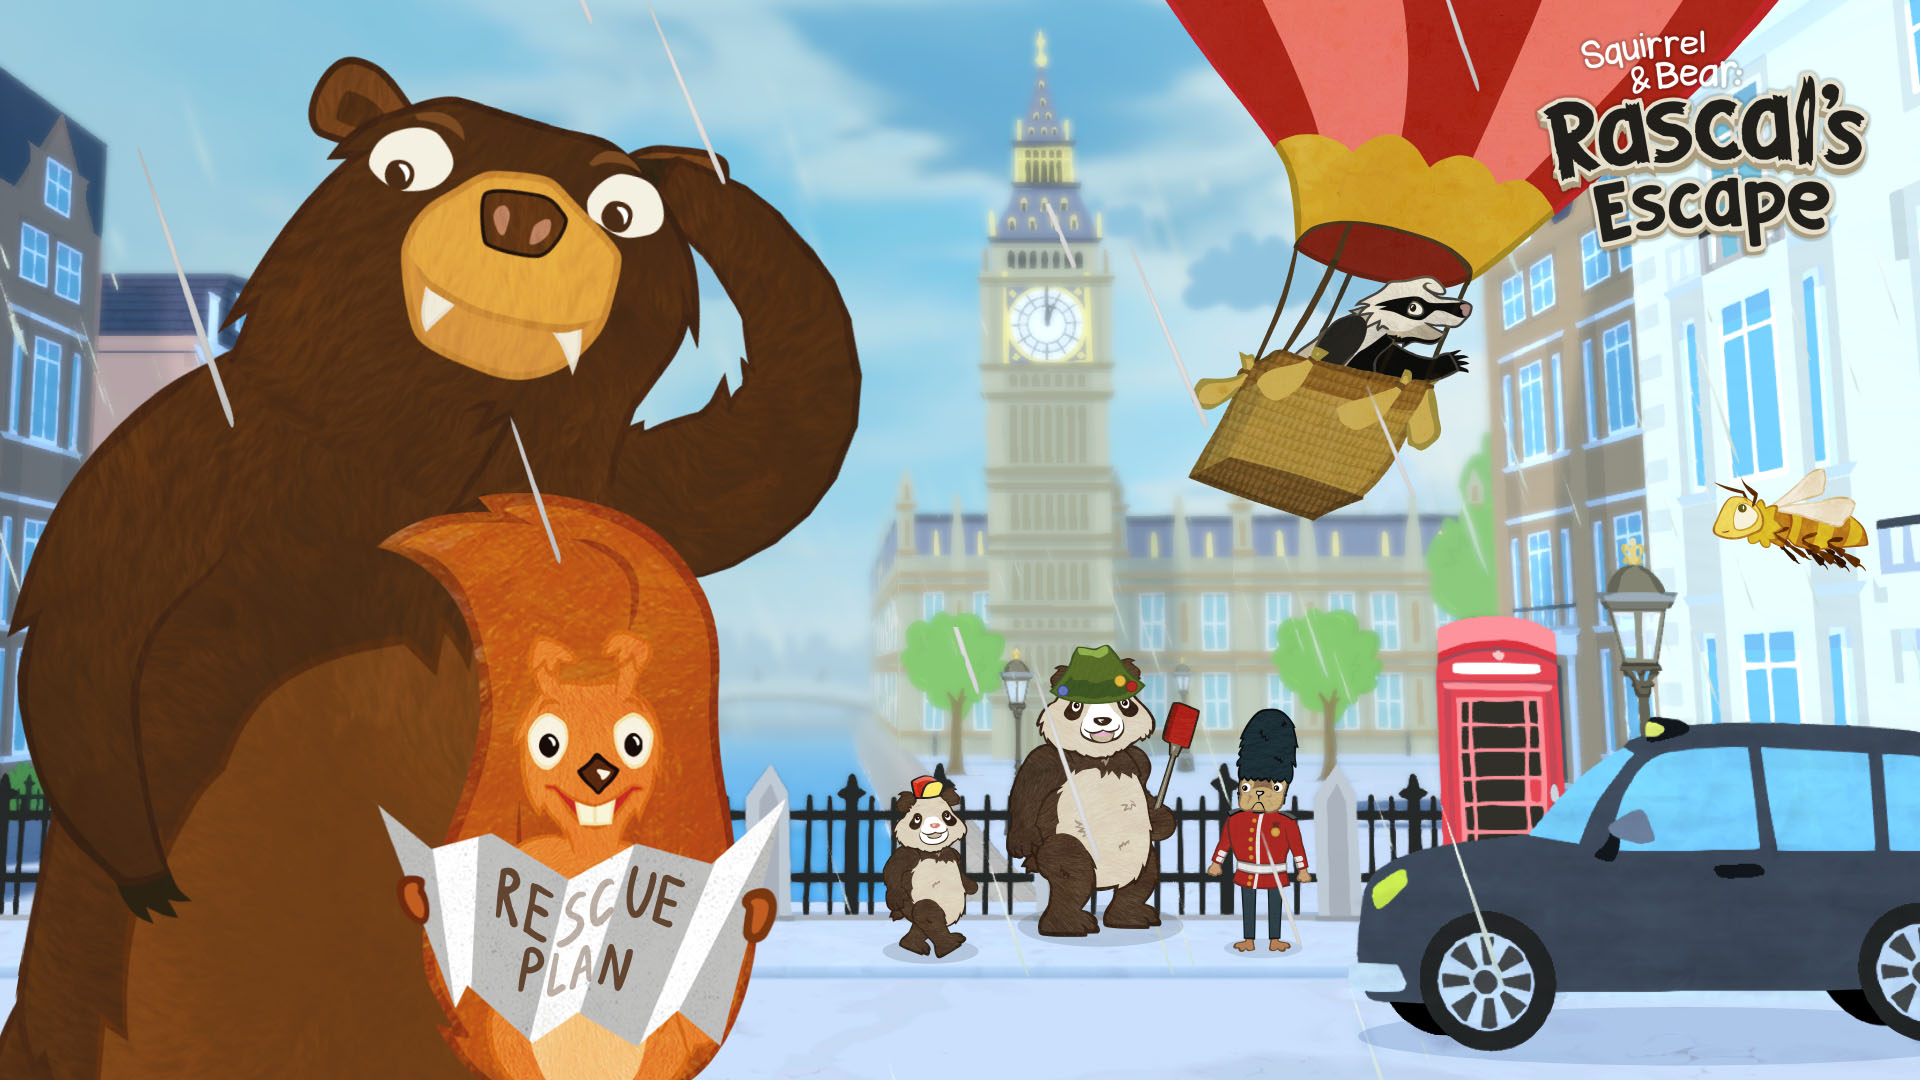 Squirrel and Bear in London watching Rascal in a red Ballon